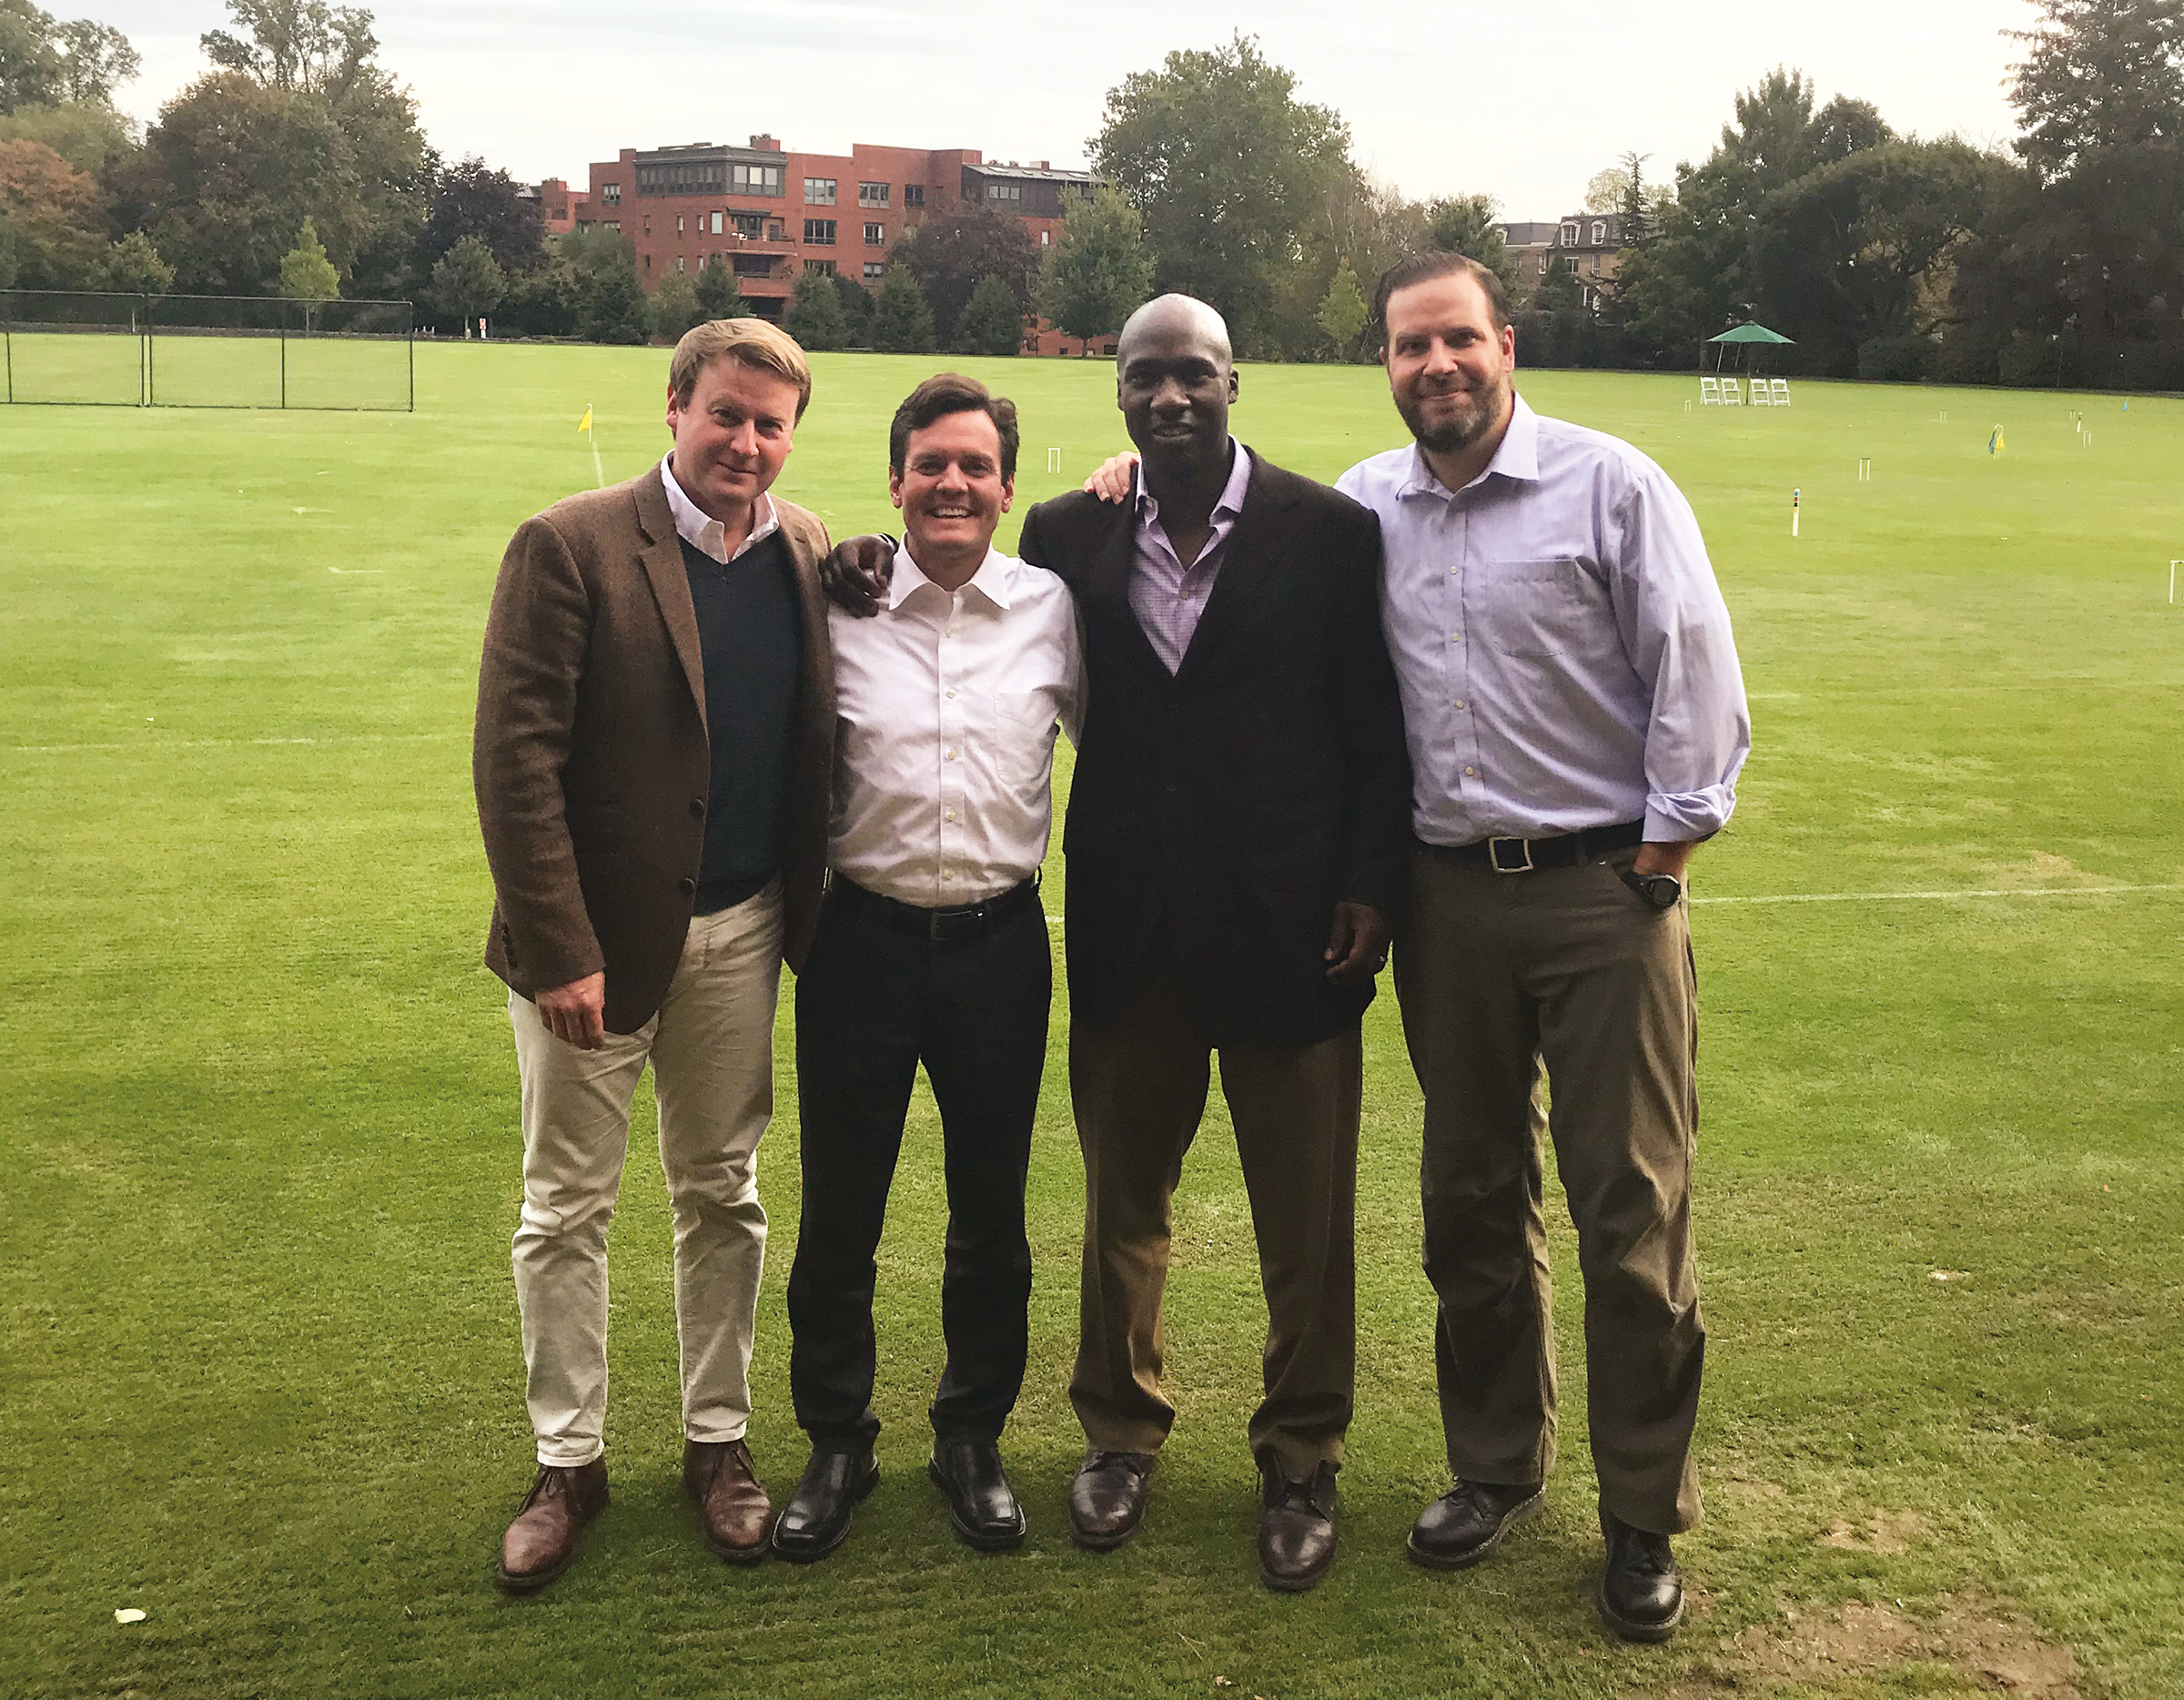 (L. to r.) Hugh Anderson '89, John Zurn '91, Amachie Ackah '90, and Toby True '91 at the Merion Cricket Club in Philadelphia, continuing an annual tradition of celebrating Cricket Holiday together.